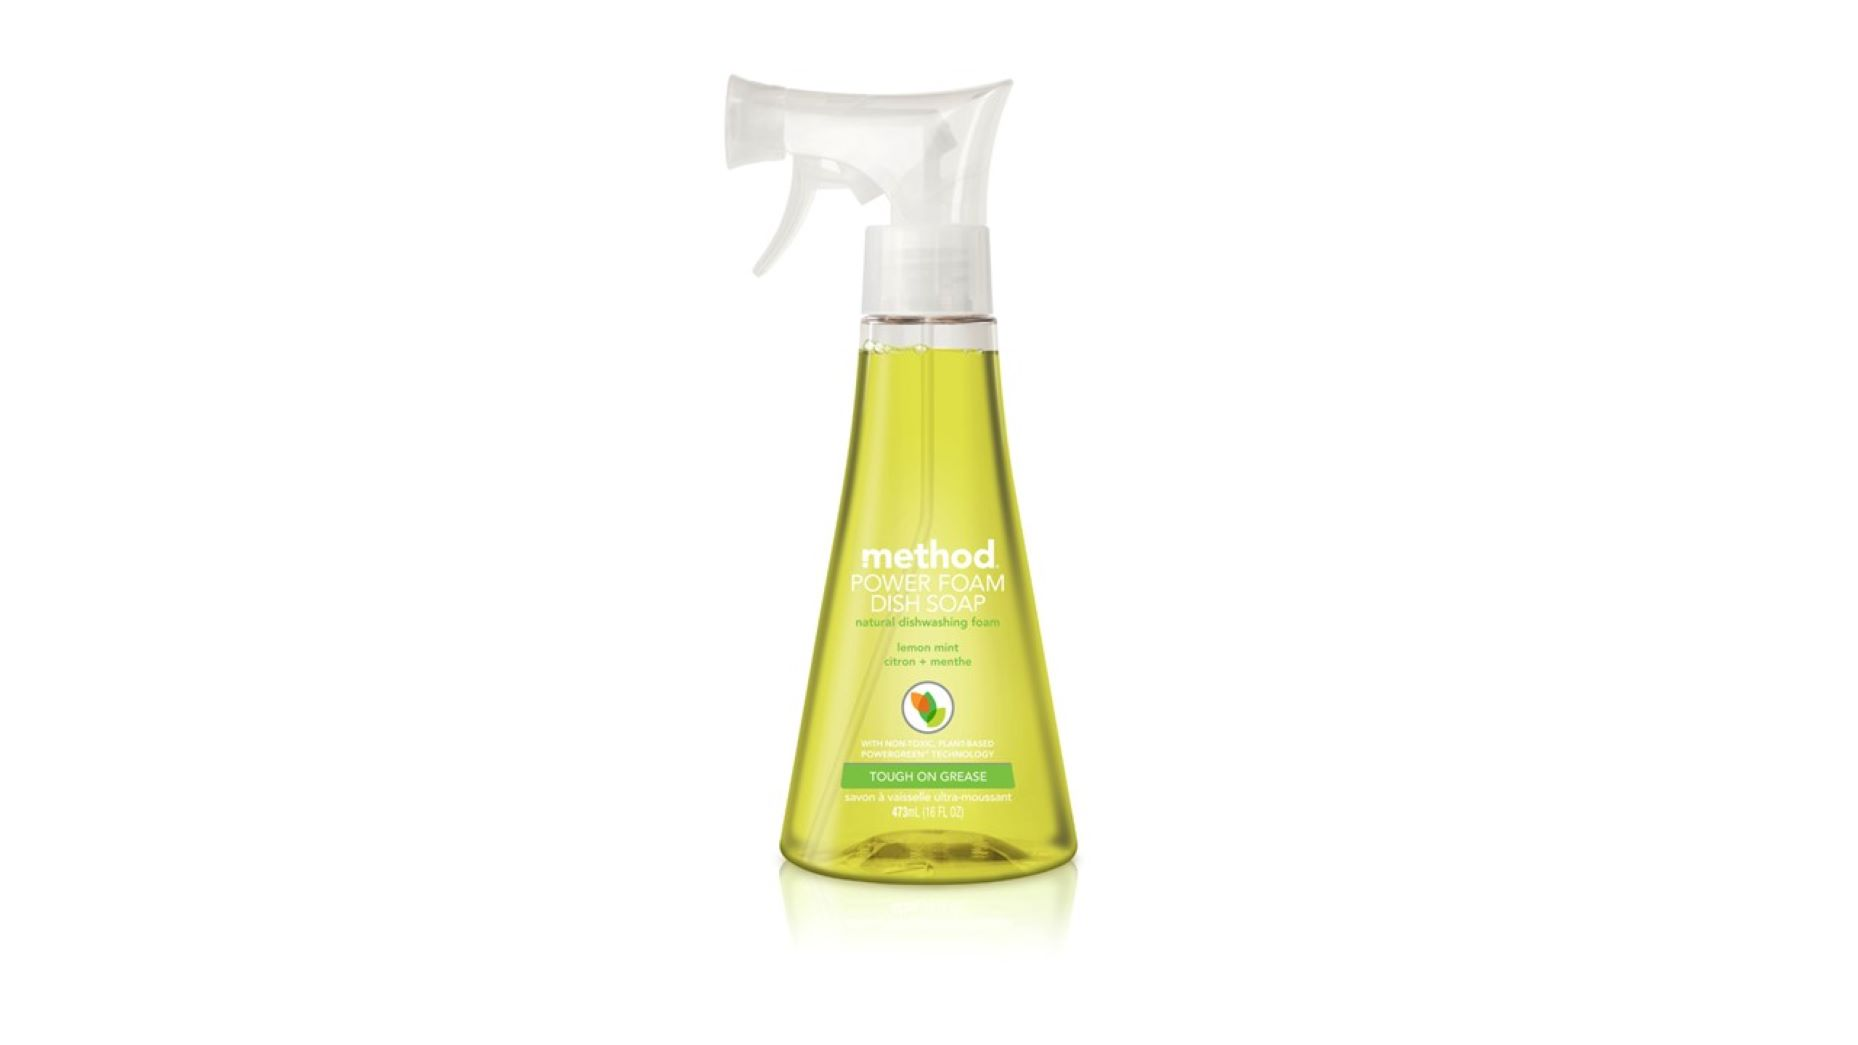 Method Astianpesuvaahto Lemon Mint 473ml